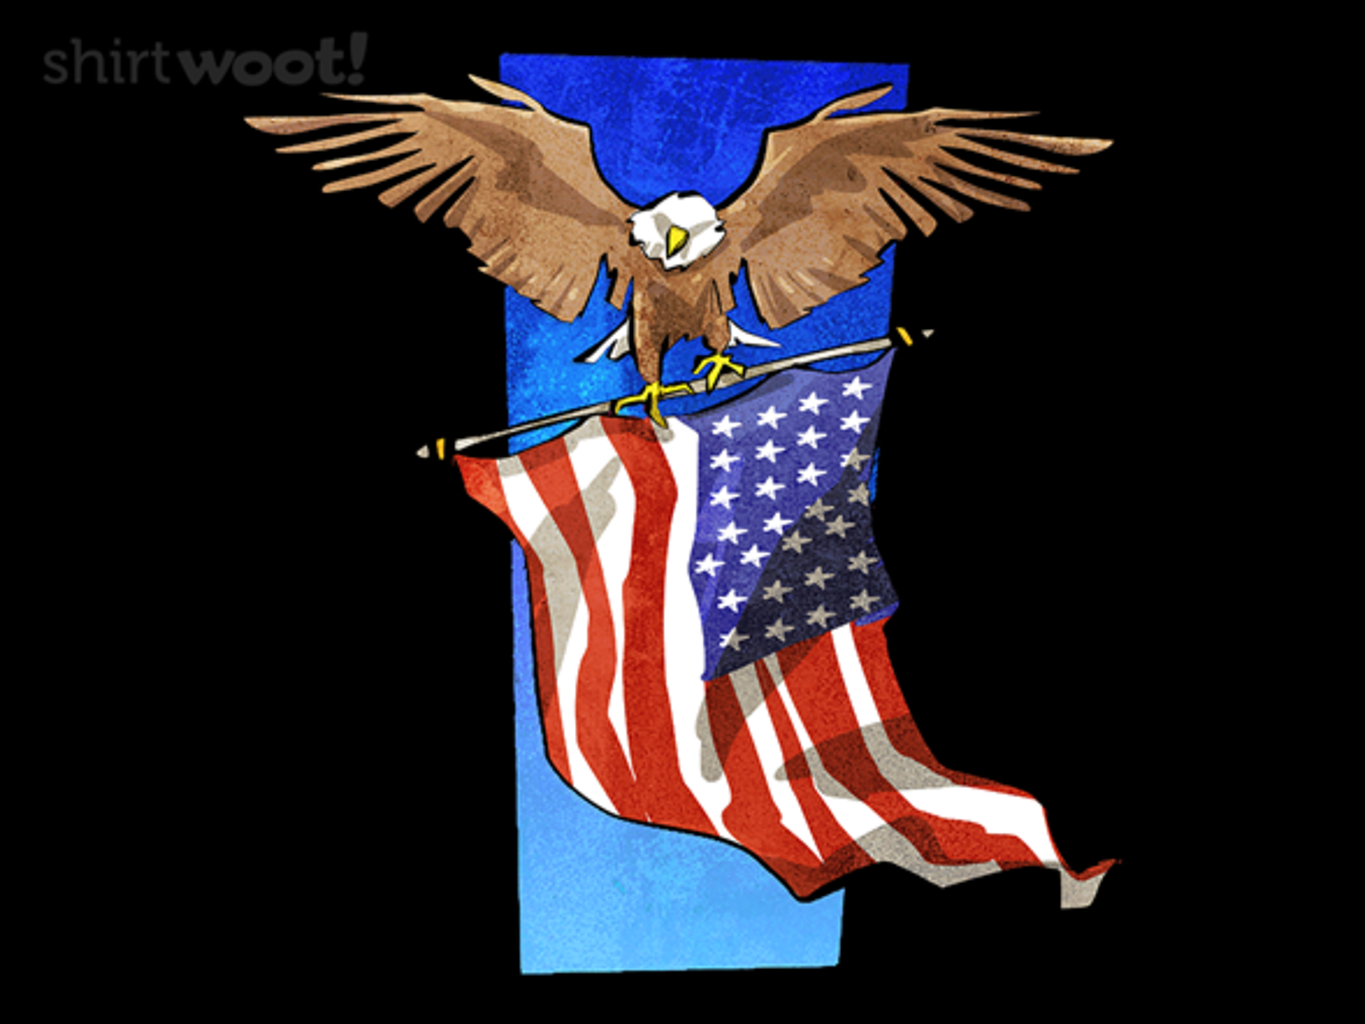 Woot!: 4th of July Eagle